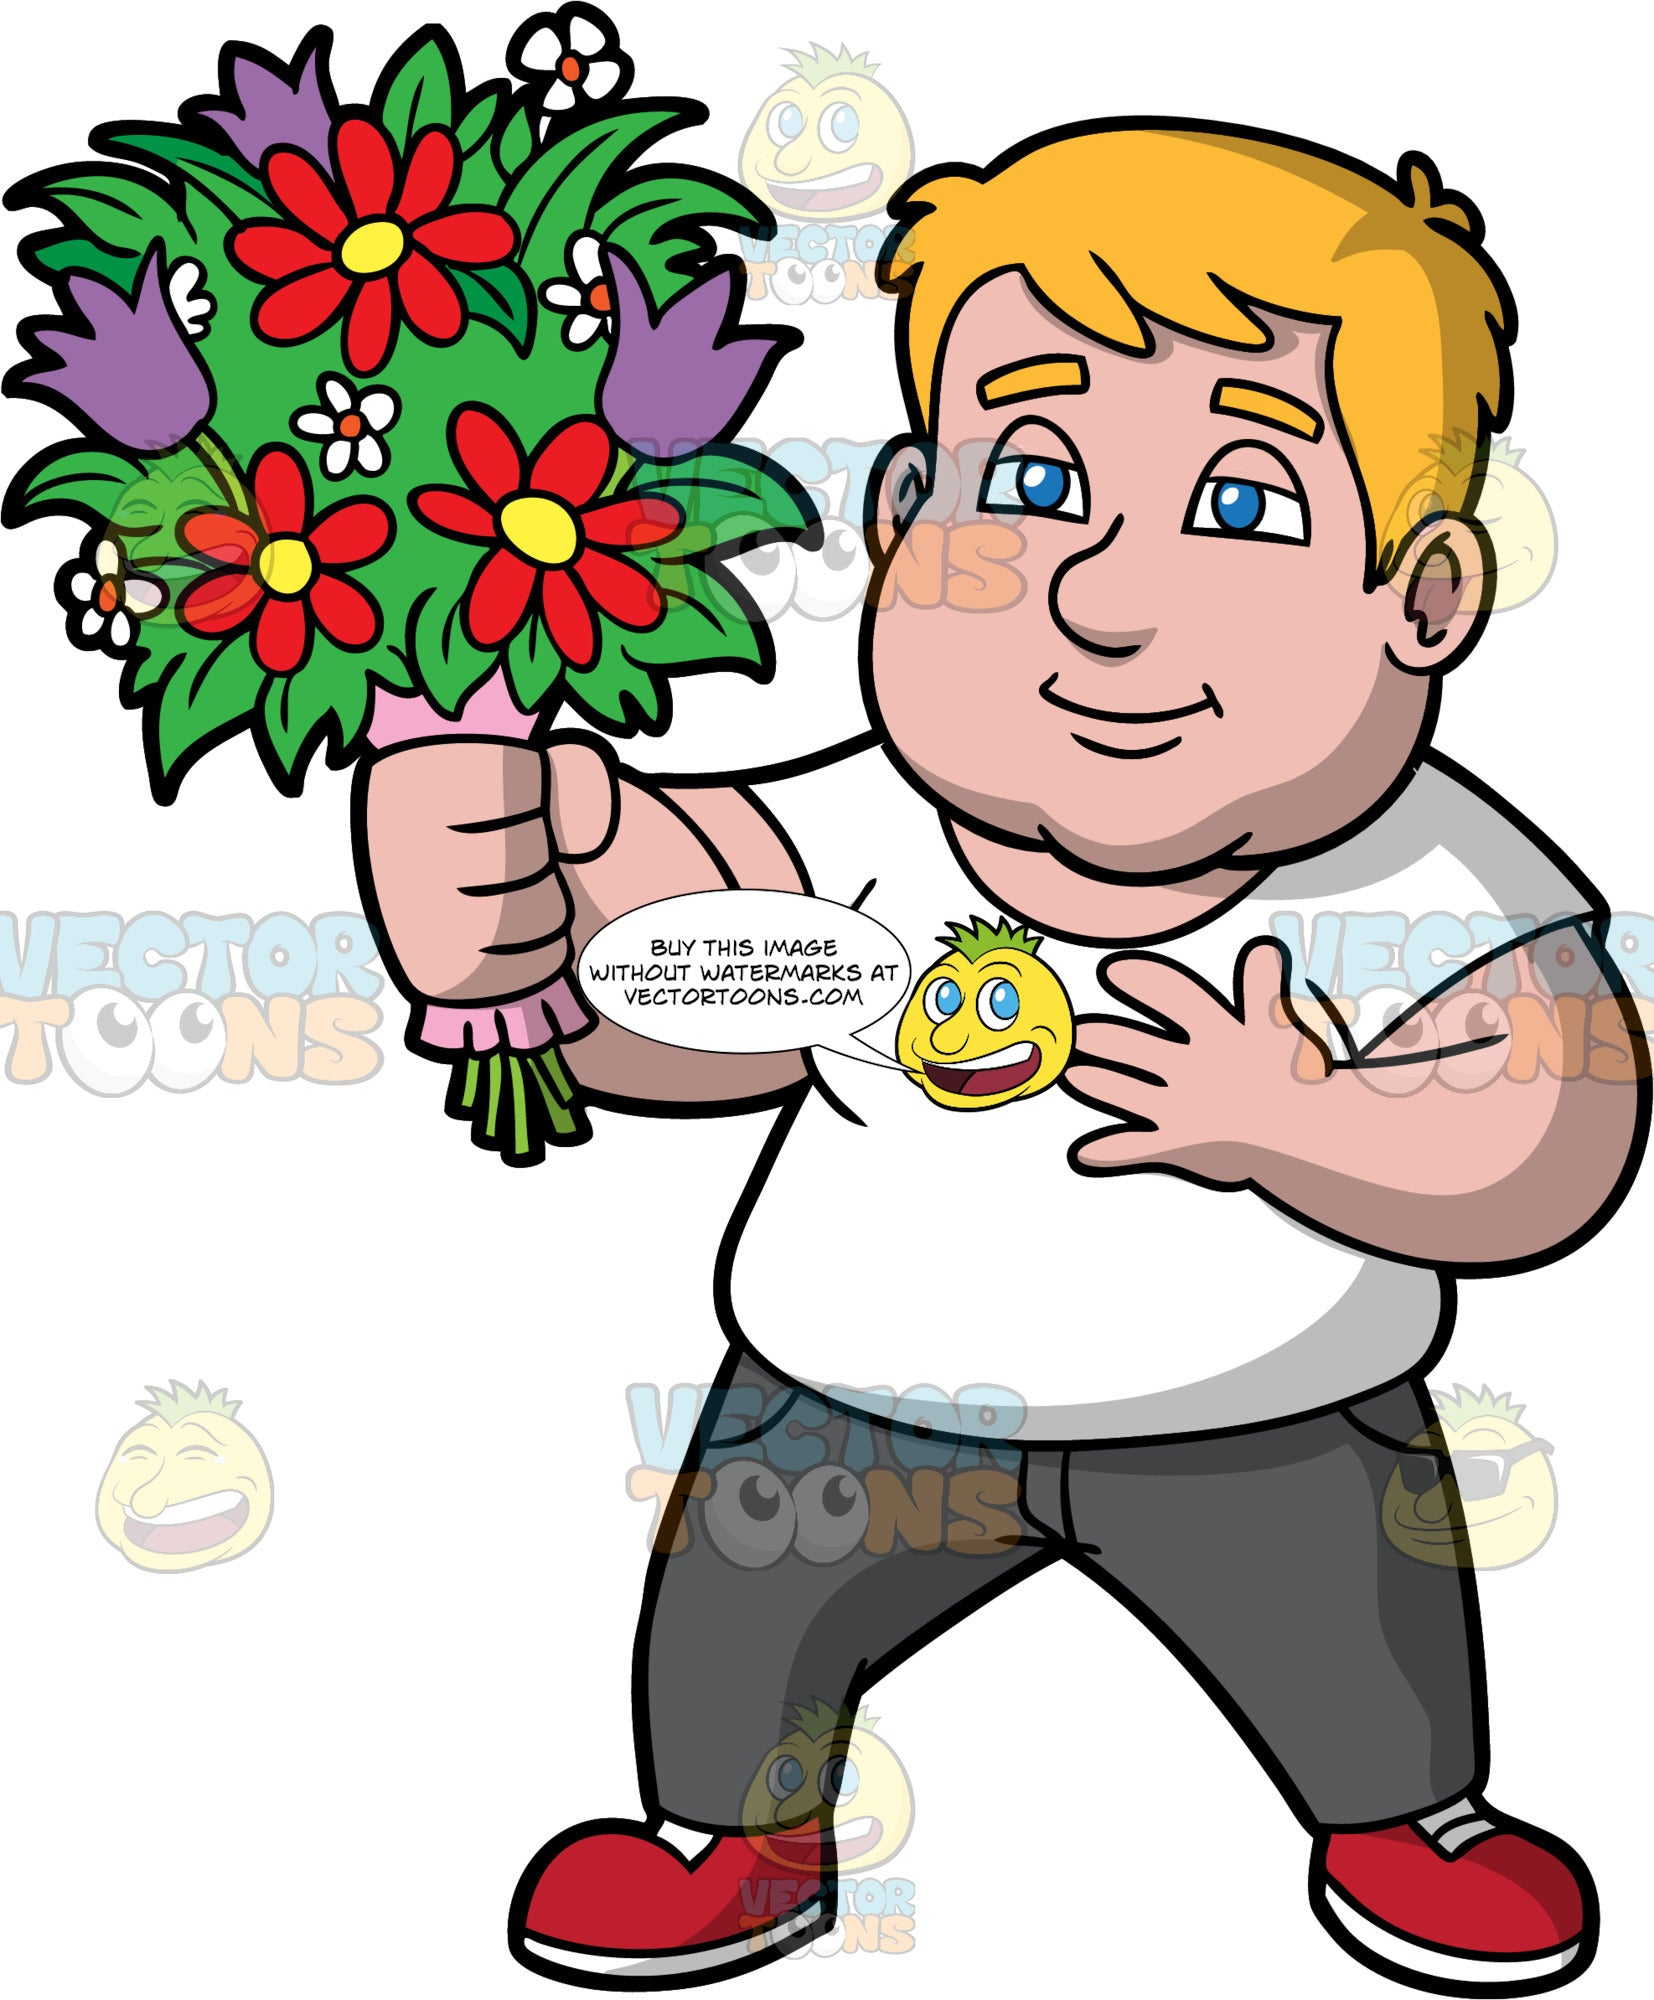 Sam Giving A Bouquet Of Flowers To Someone. A chubby man wearing dark gray jeans, a white t-shirt, and red shoes, holding one hand over his heart, and presenting a beautiful bouquet of flowers to someone with his other hand